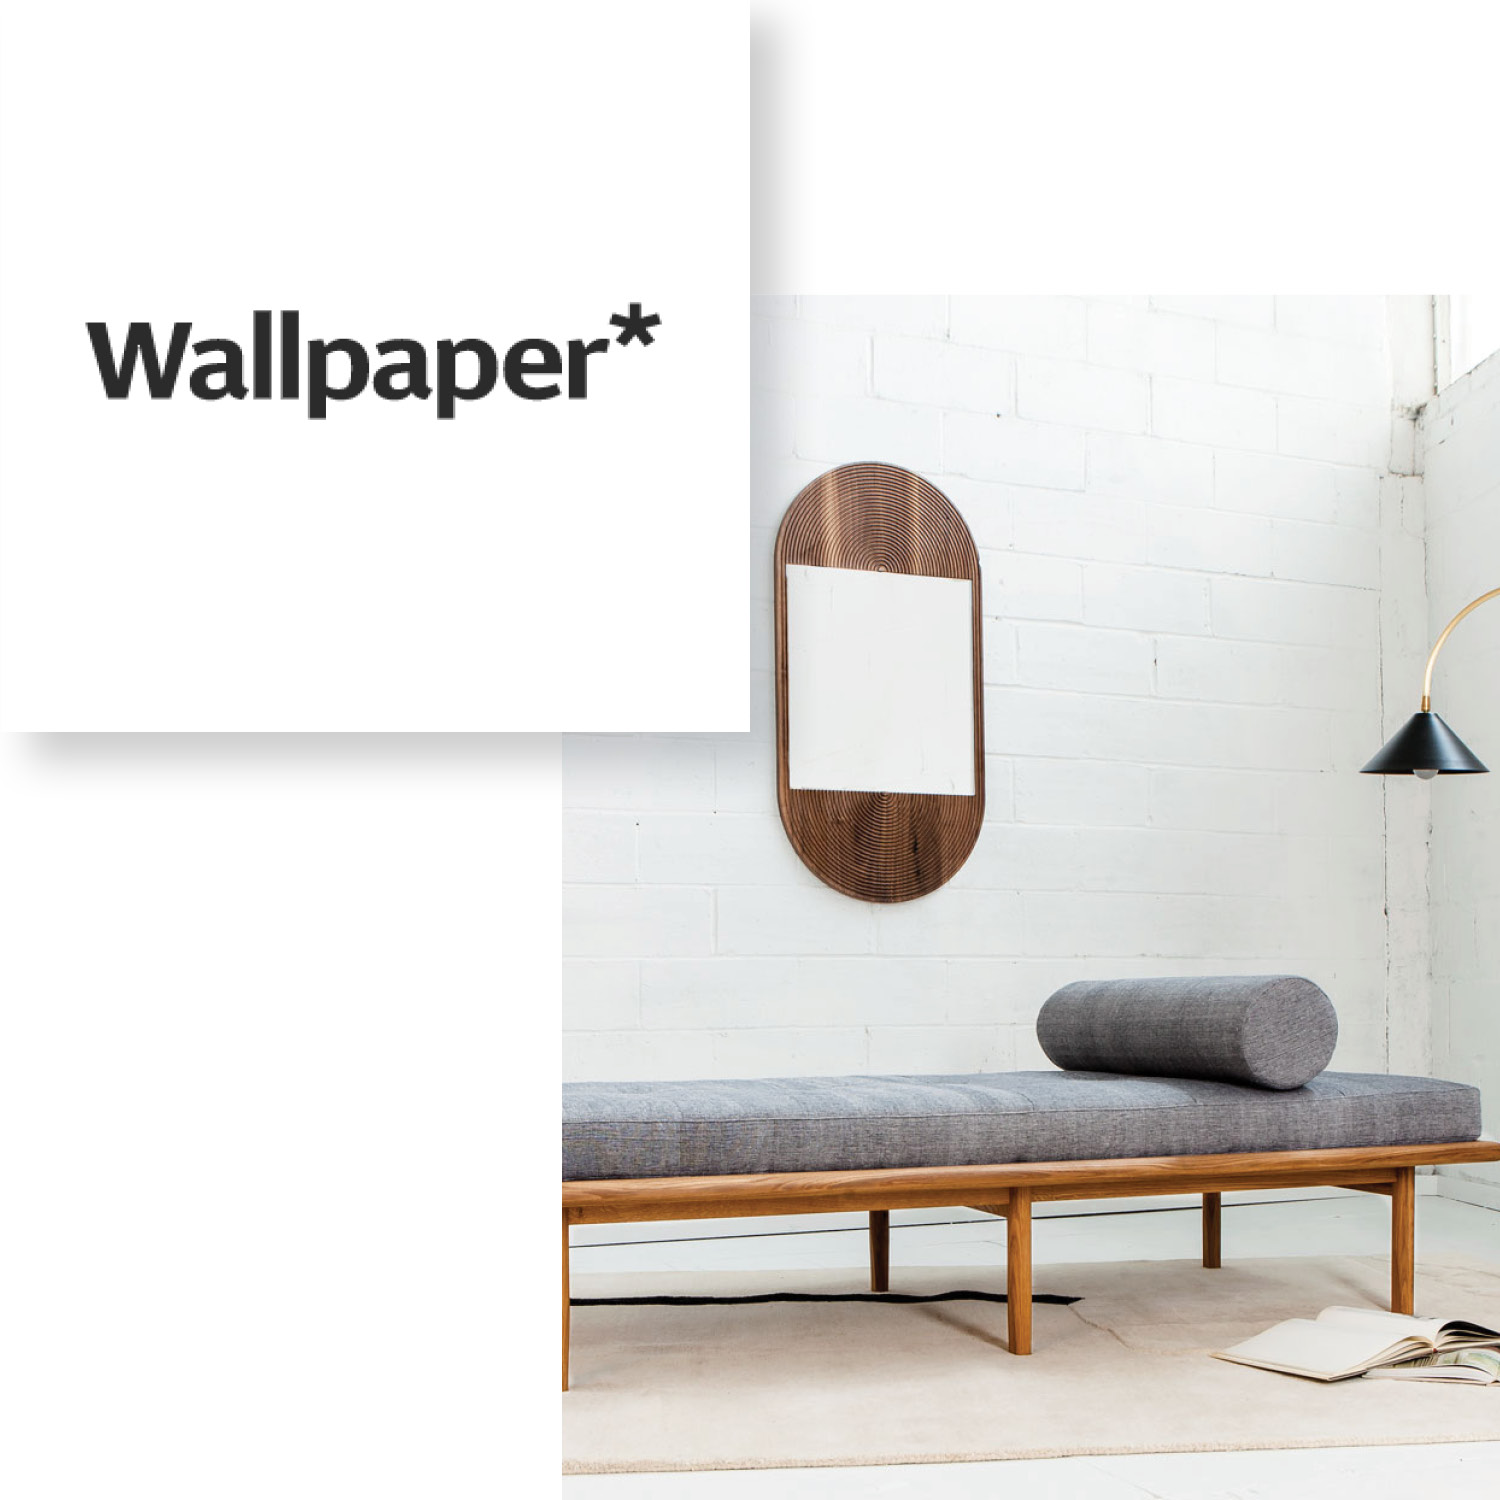 Wallpaper*, May 2016